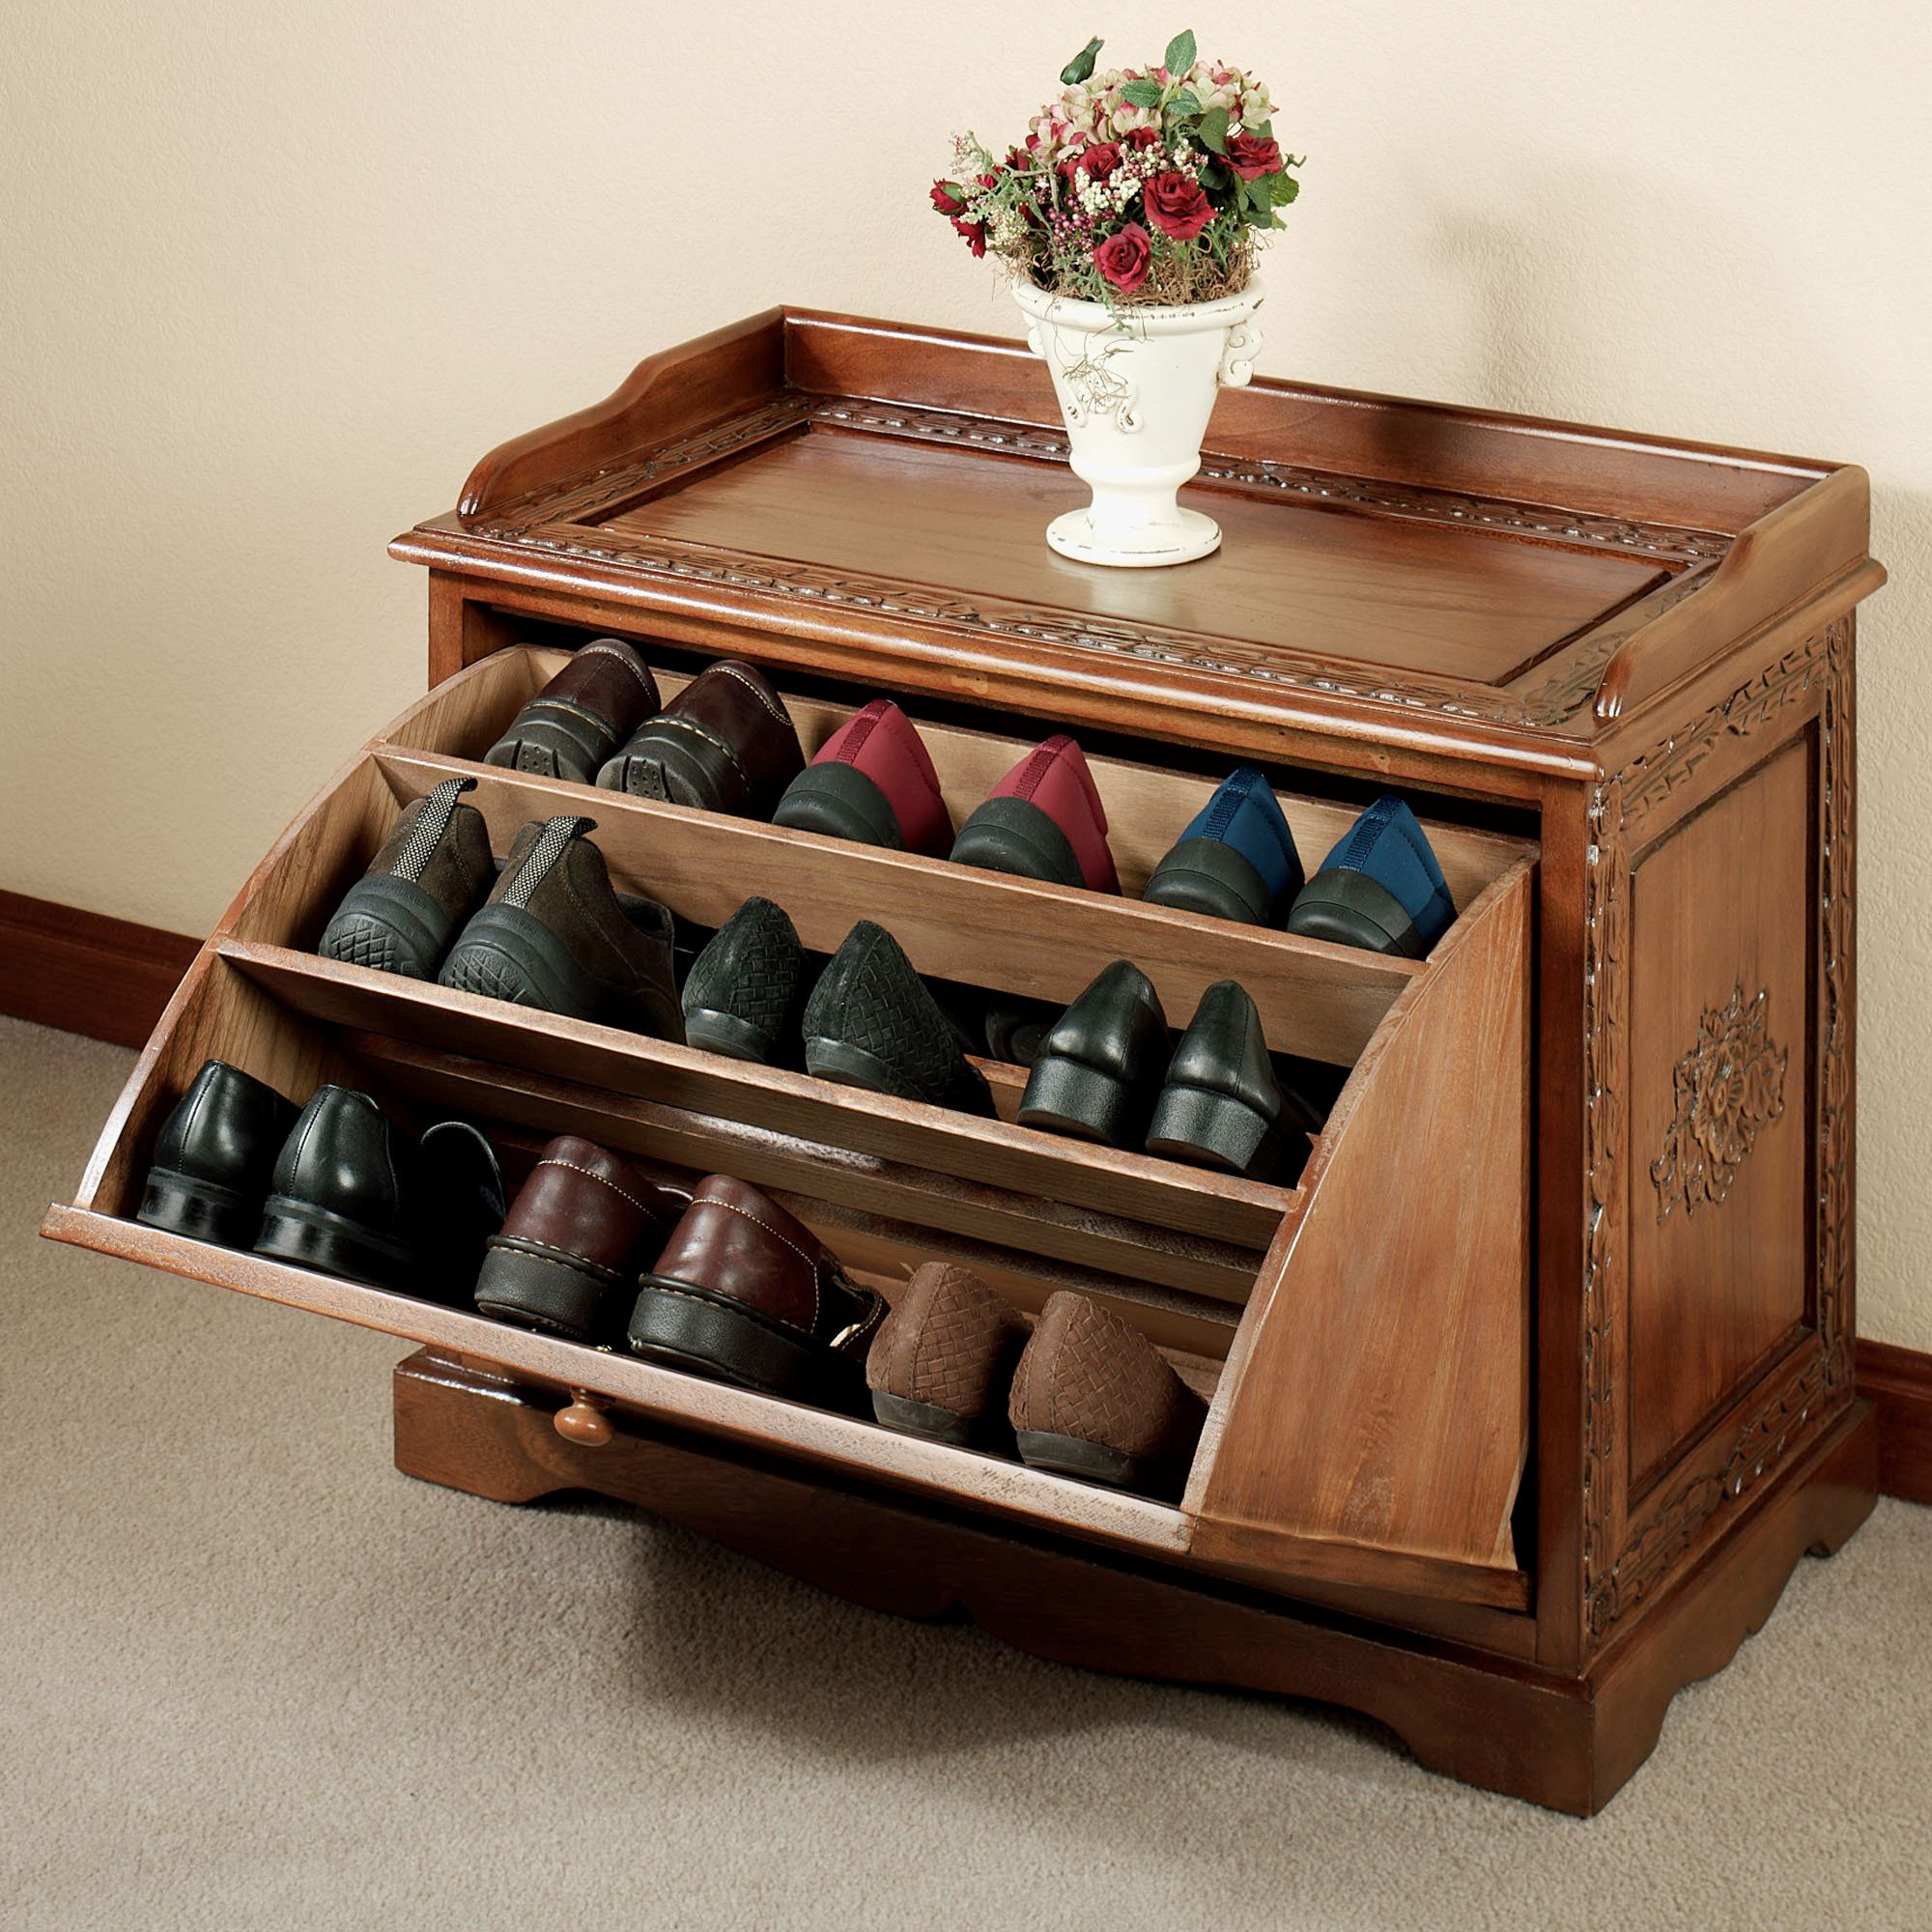 Victoriana Shoe Storage Bench Natural Cherry. Touch To Zoom